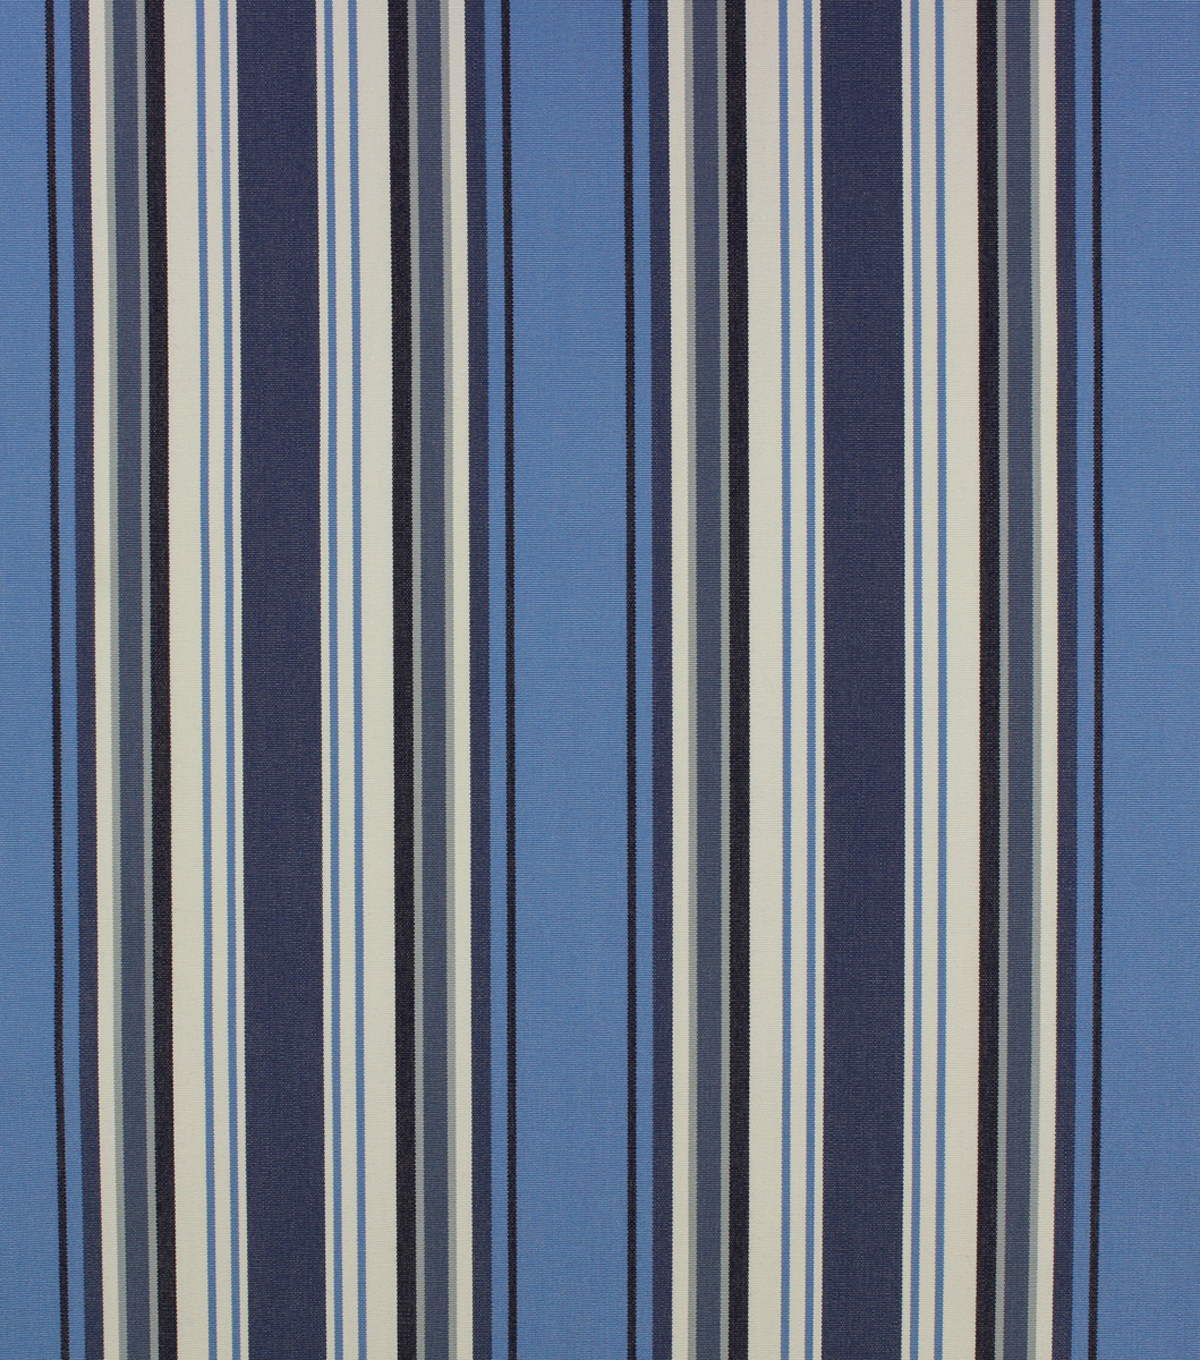 Optimum Performance Acrylic Fabric 54\u0027\u0027-Ocean Stripes